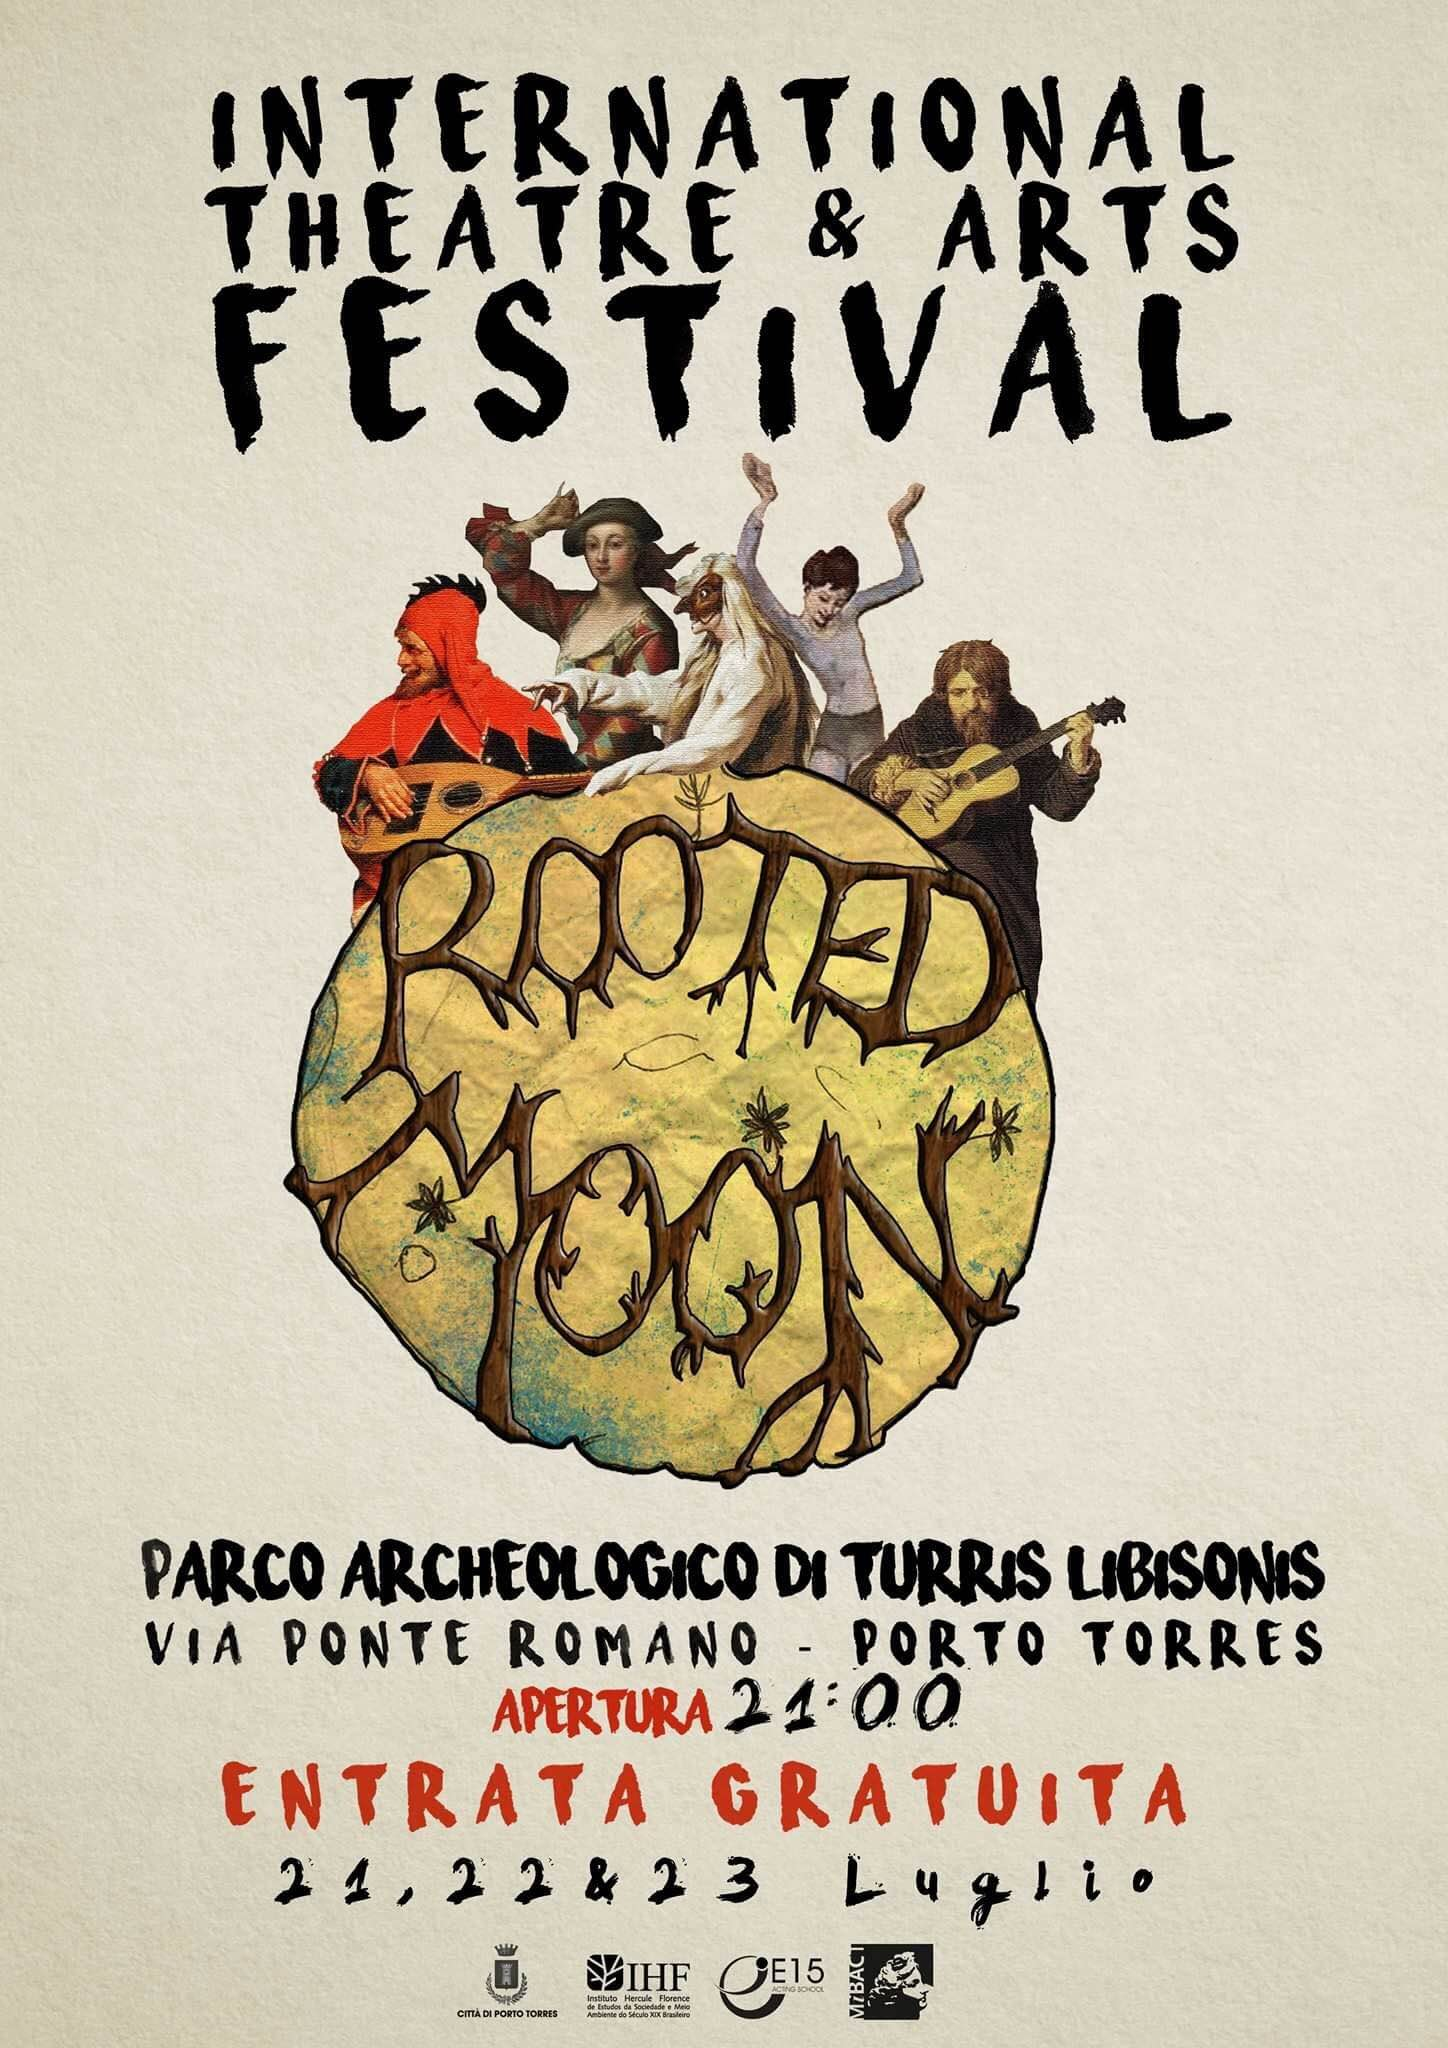 """Rooted Moon International Theatre and Arts Festival"" Porto Torres Parco Archeologico Turris Libissonis 21/22/23 luglio 2016."